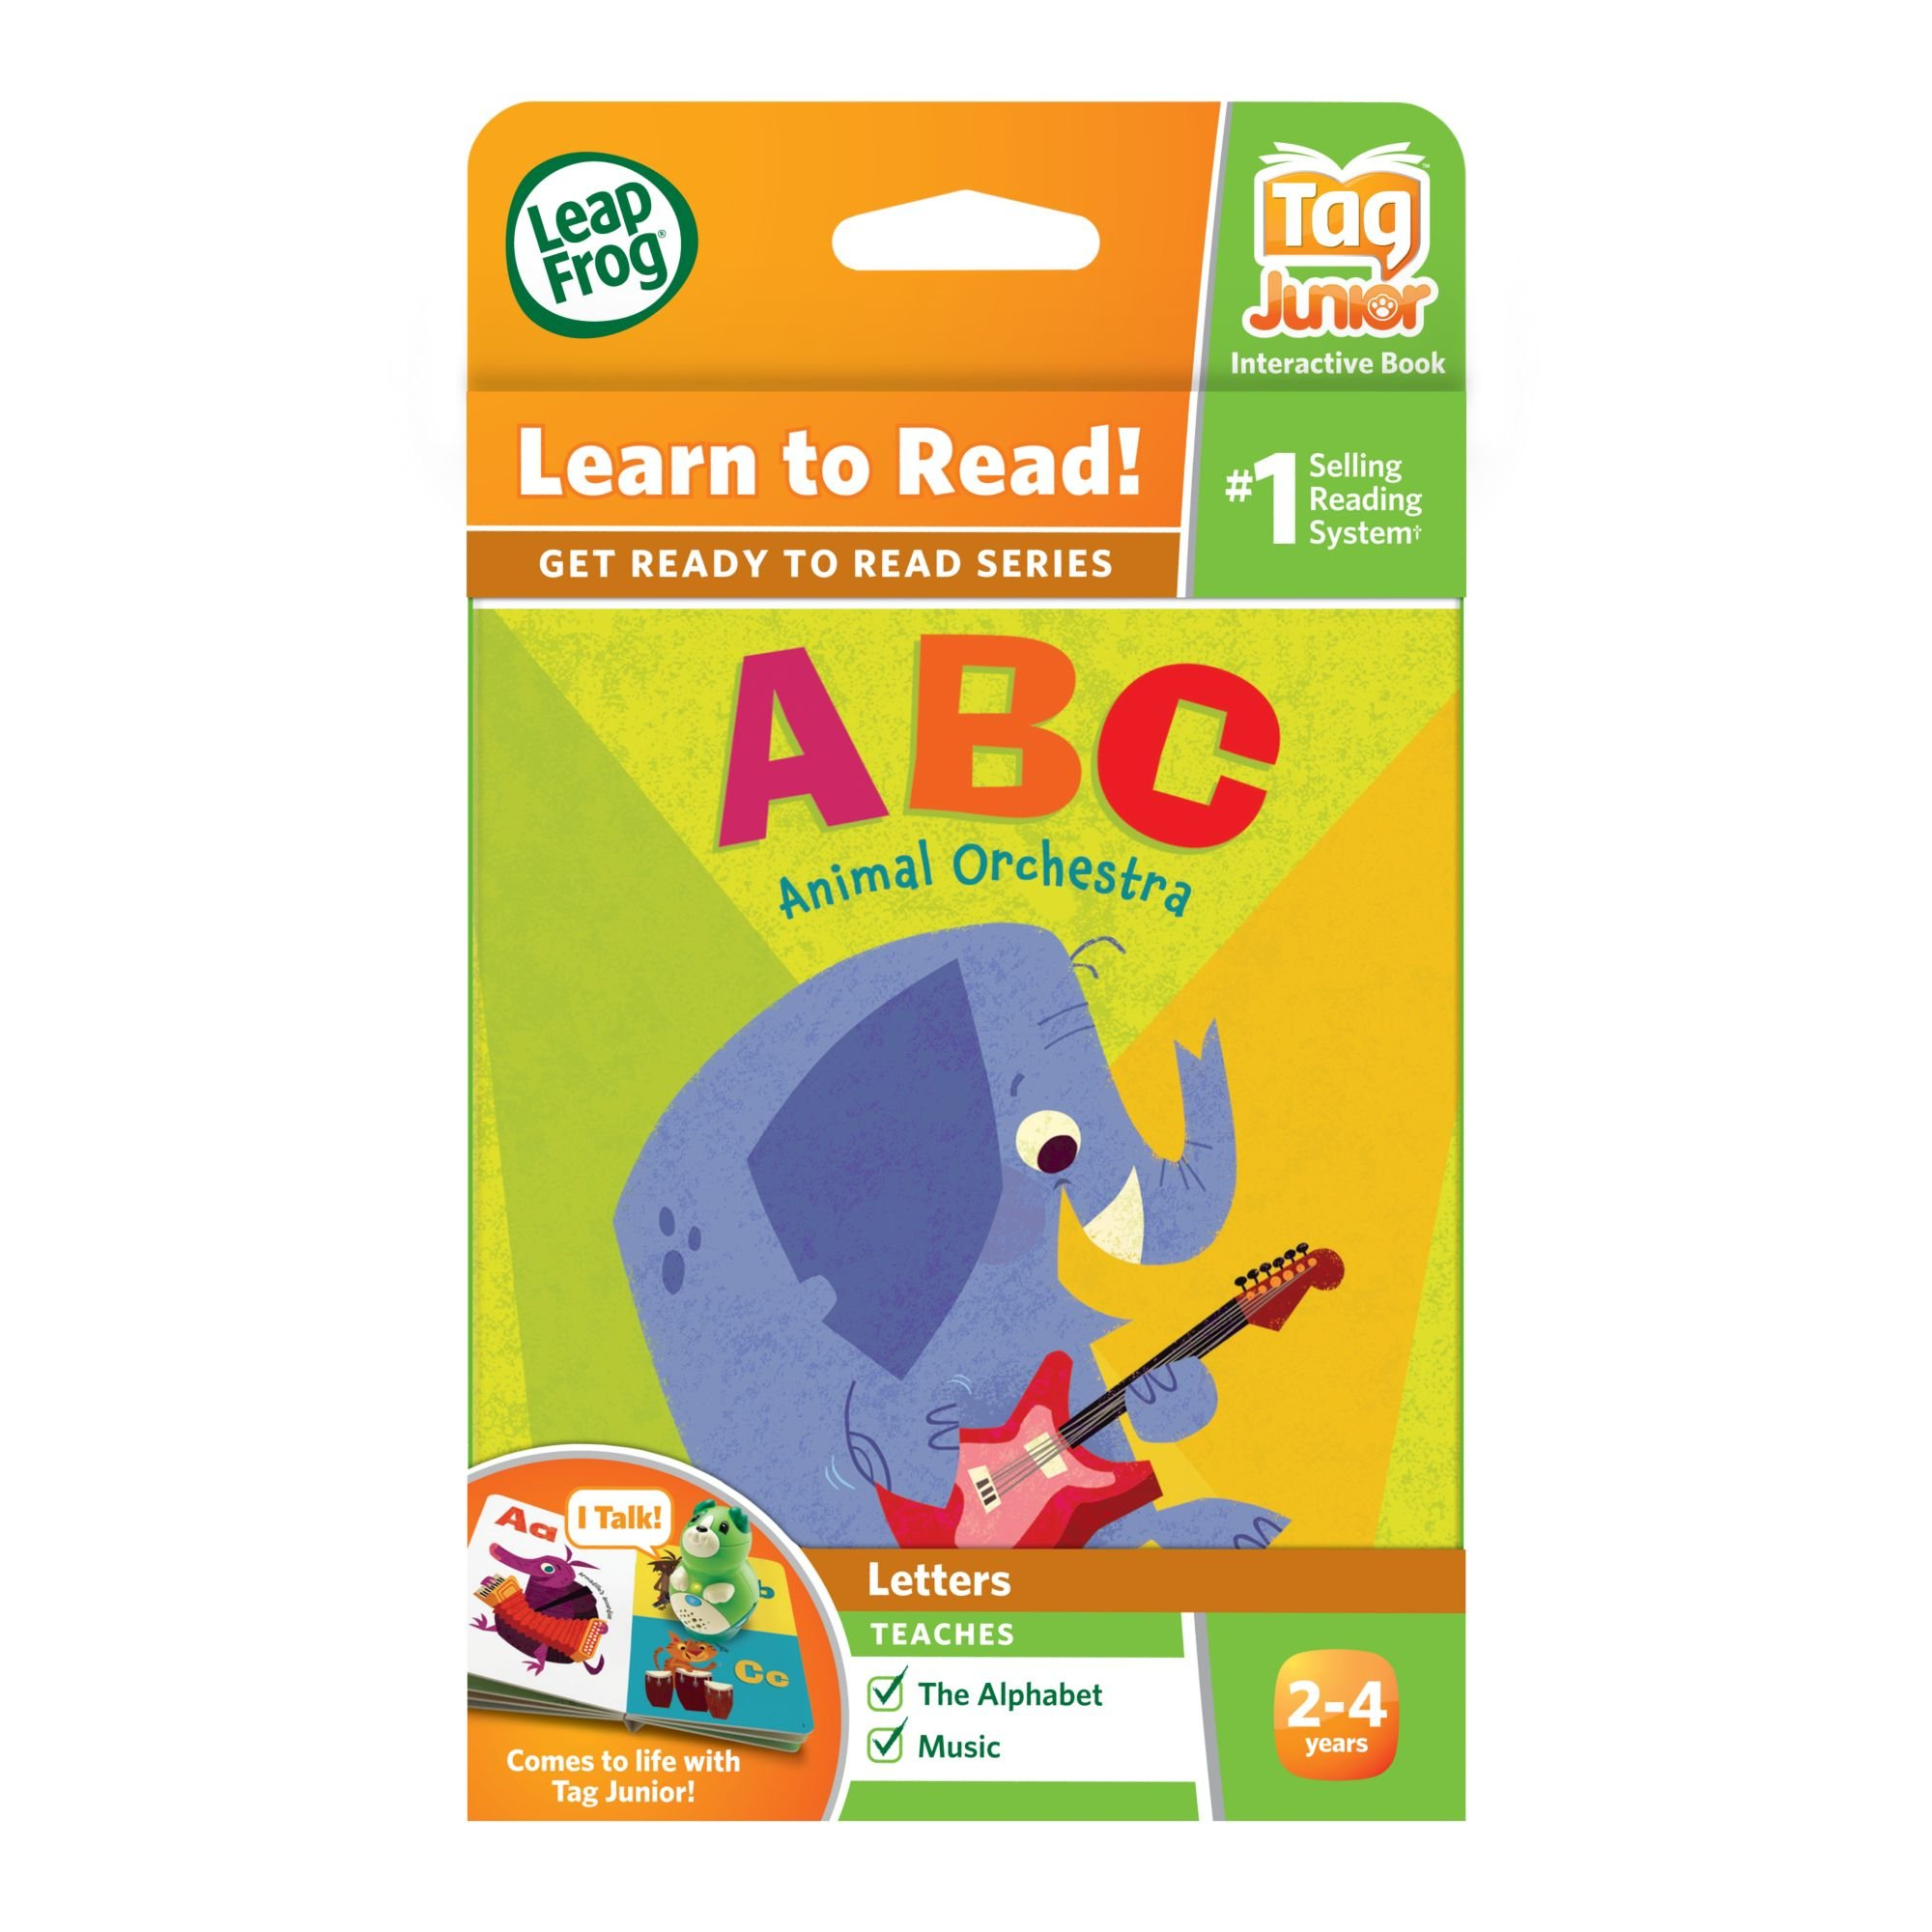 LeapFrog LeapReader Junior Book: ABC Animal Orchestra (works with Tag) by LeapFrog (Image #4)